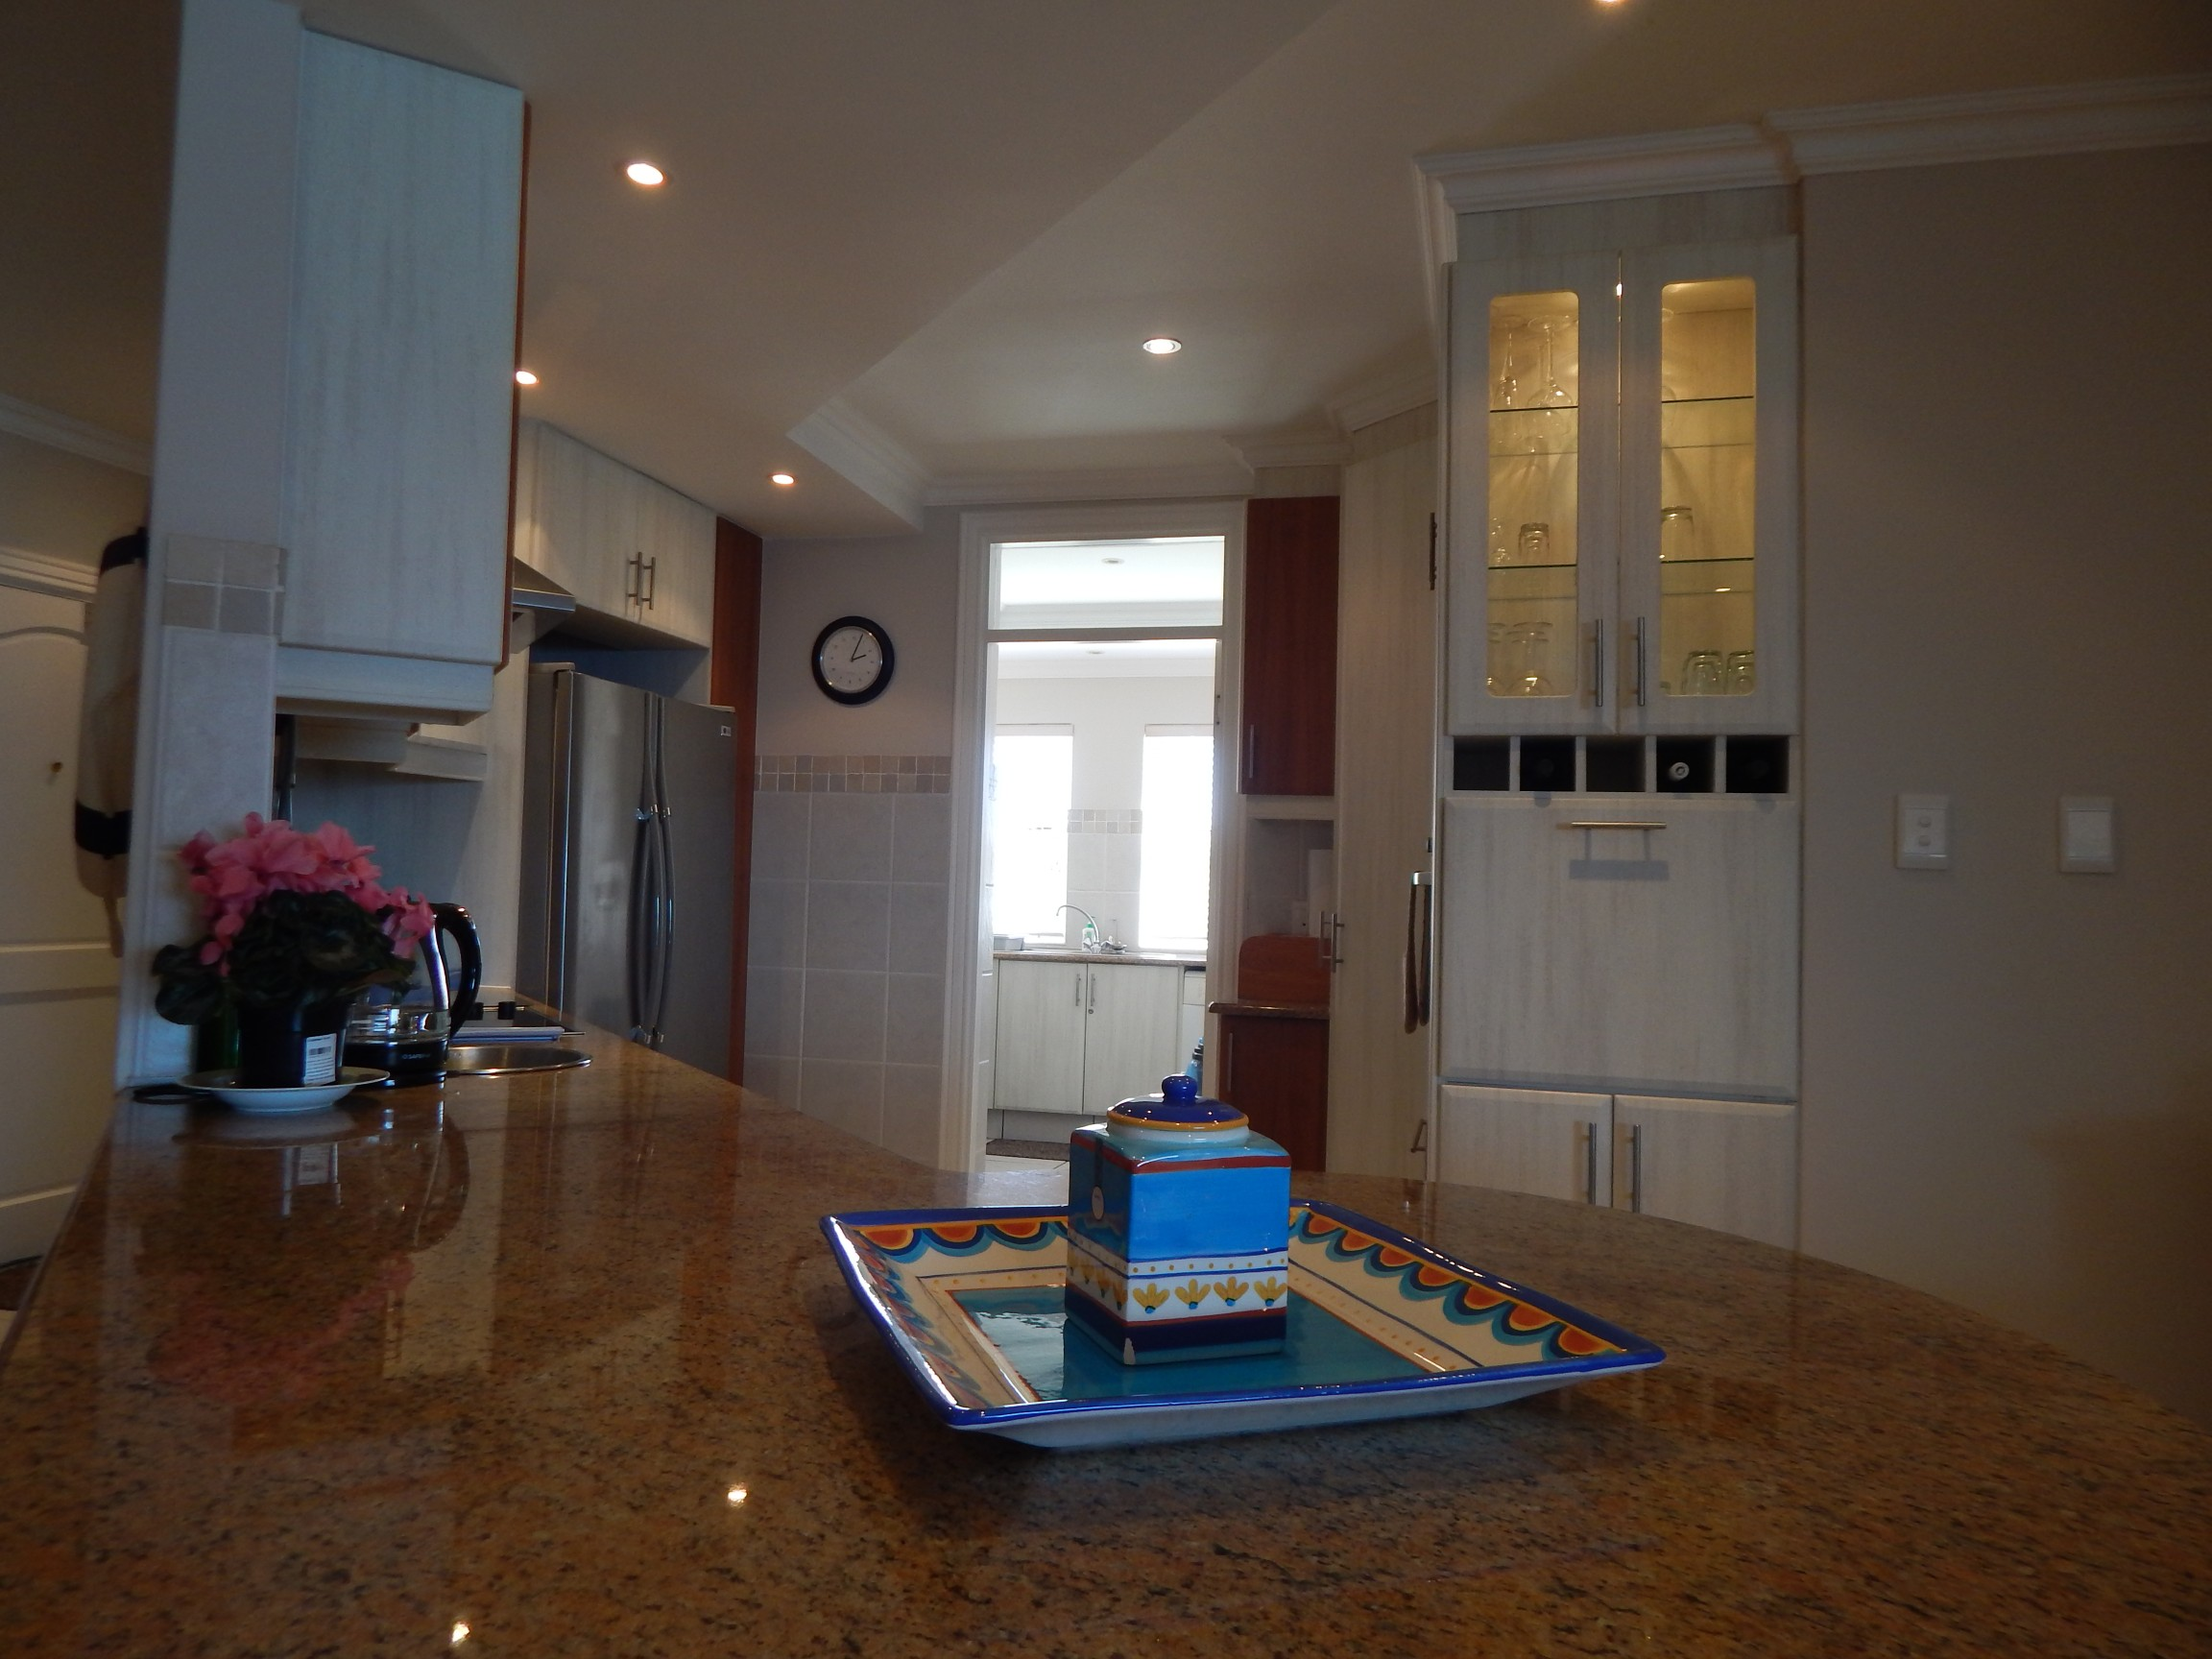 3 Bedroom Apartment for sale in Diaz Beach ENT0069020 : photo#13